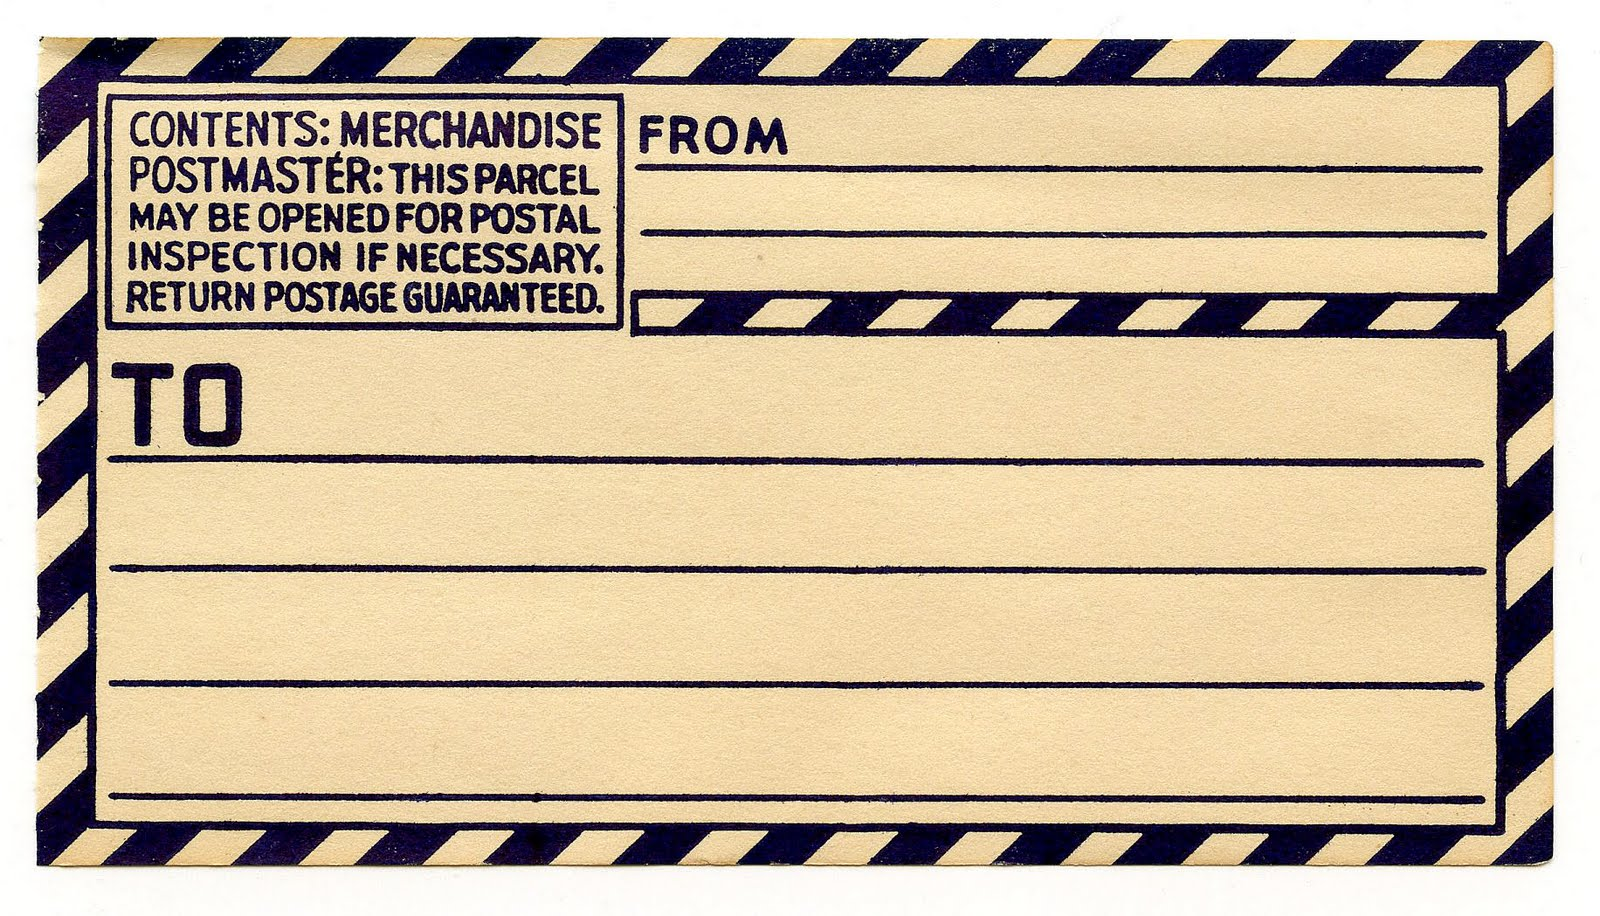 Vintage Clip Art Old Gummed Parcel Post Label The